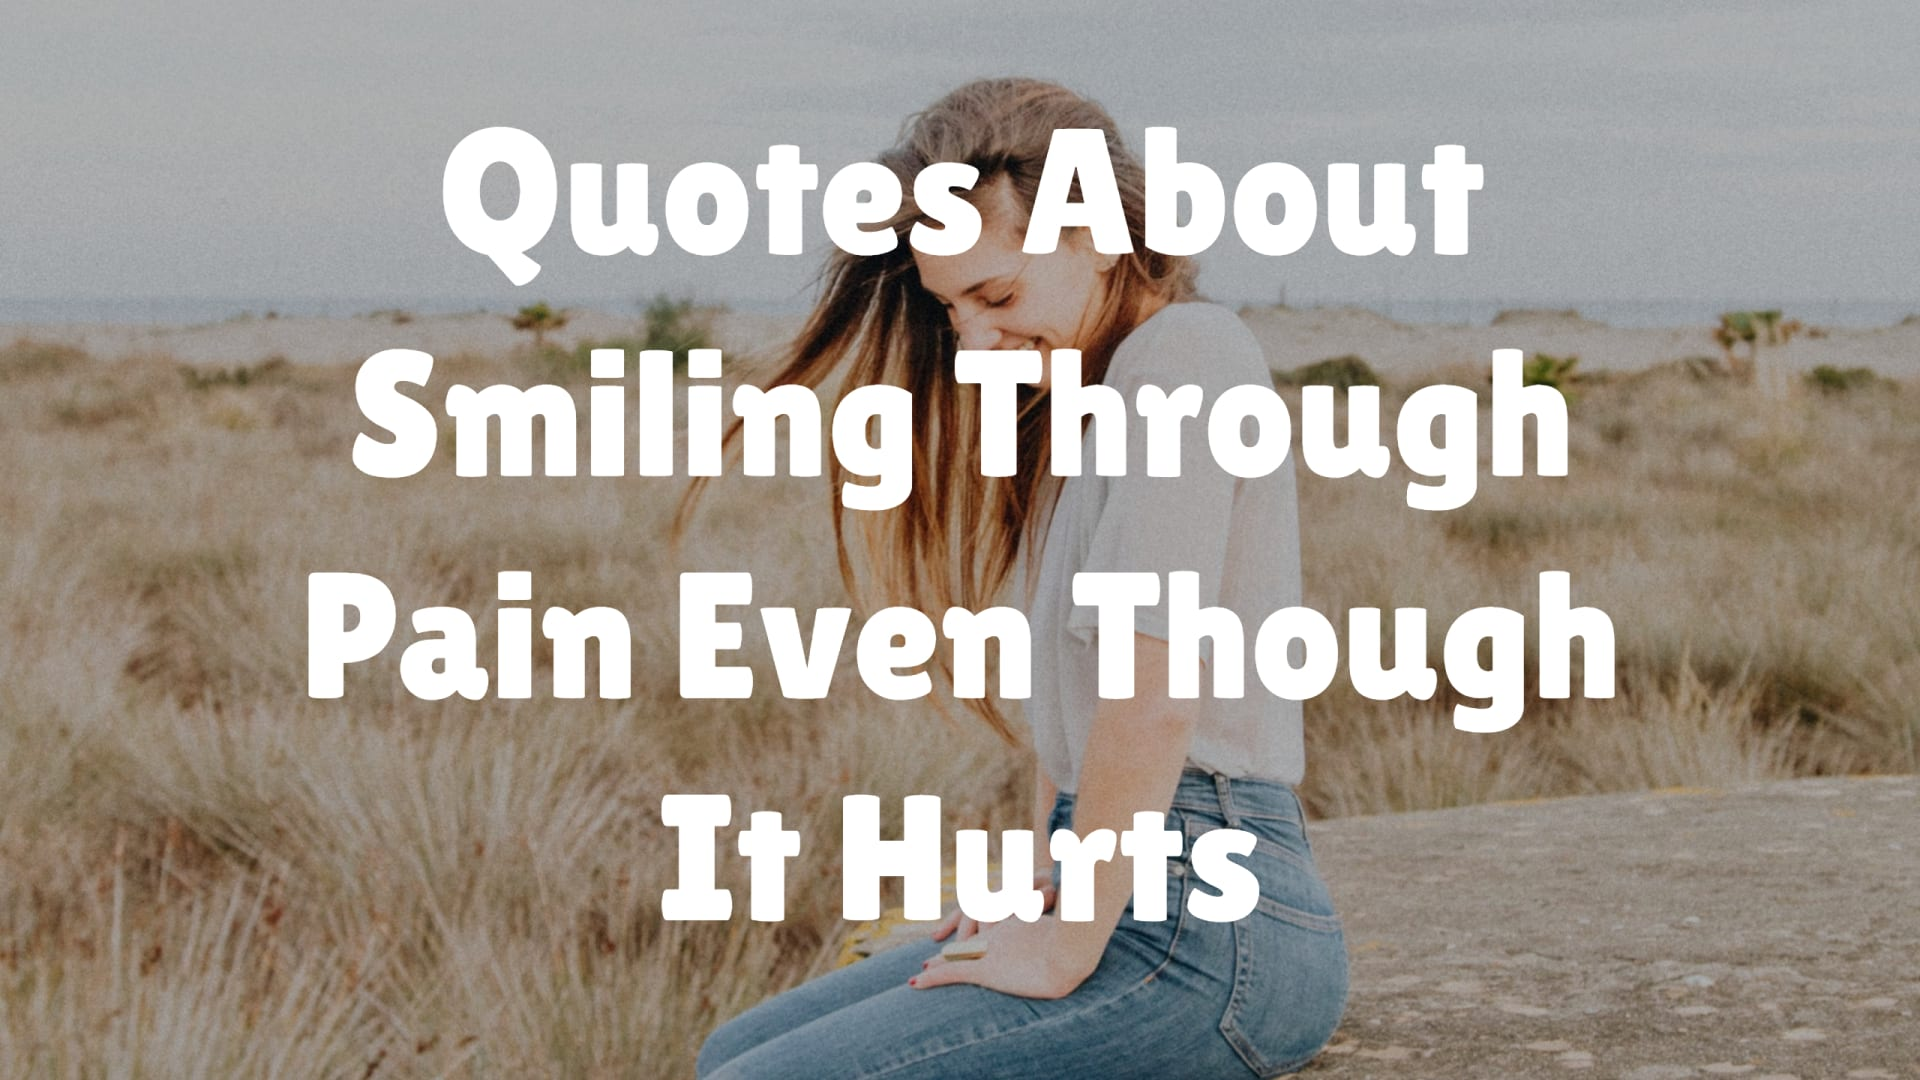 Quotes About Smiling Through Pain Even Though It Hurts